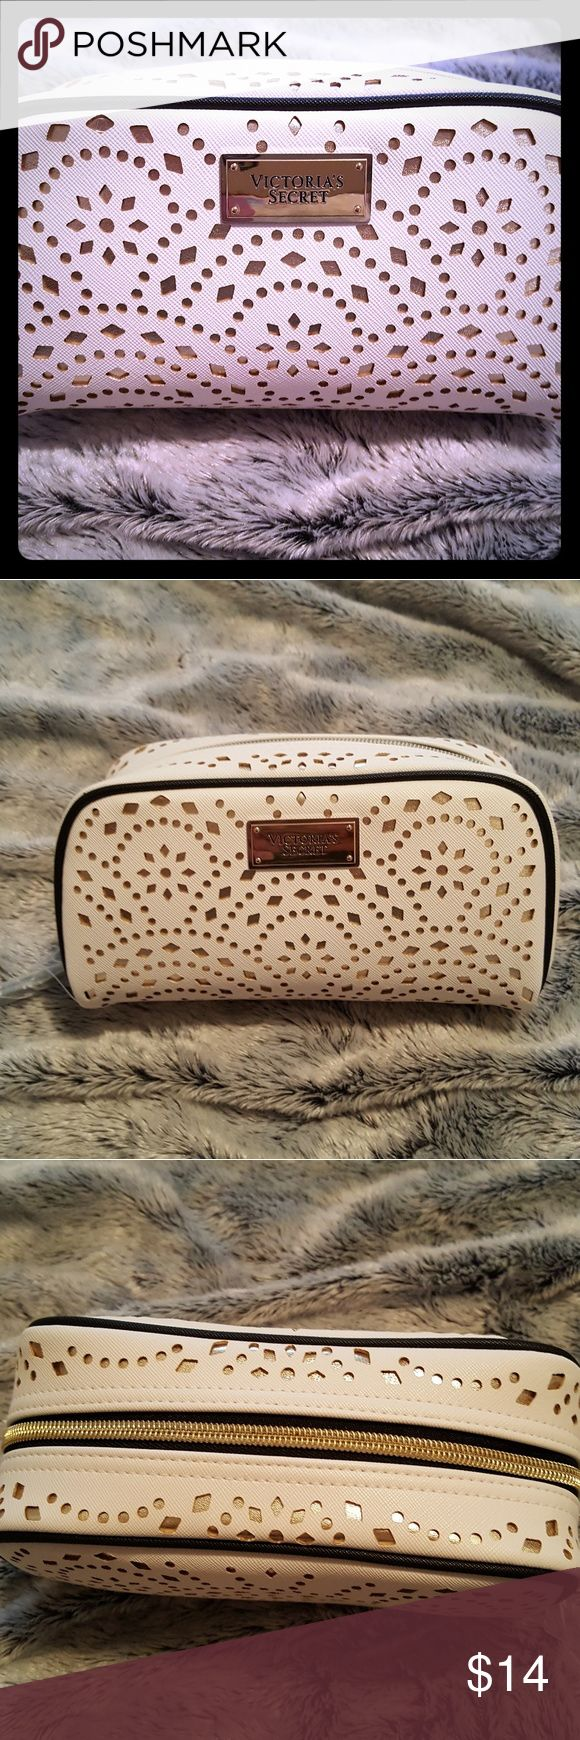 Victoria Secret small cosmetic bag!!! So cute and just the right size for your tote or your luggage!!! White cut out design over gold with black trim and goldtone hardware!!! NWOT Victoria's Secret Bags Cosmetic Bags & Cases